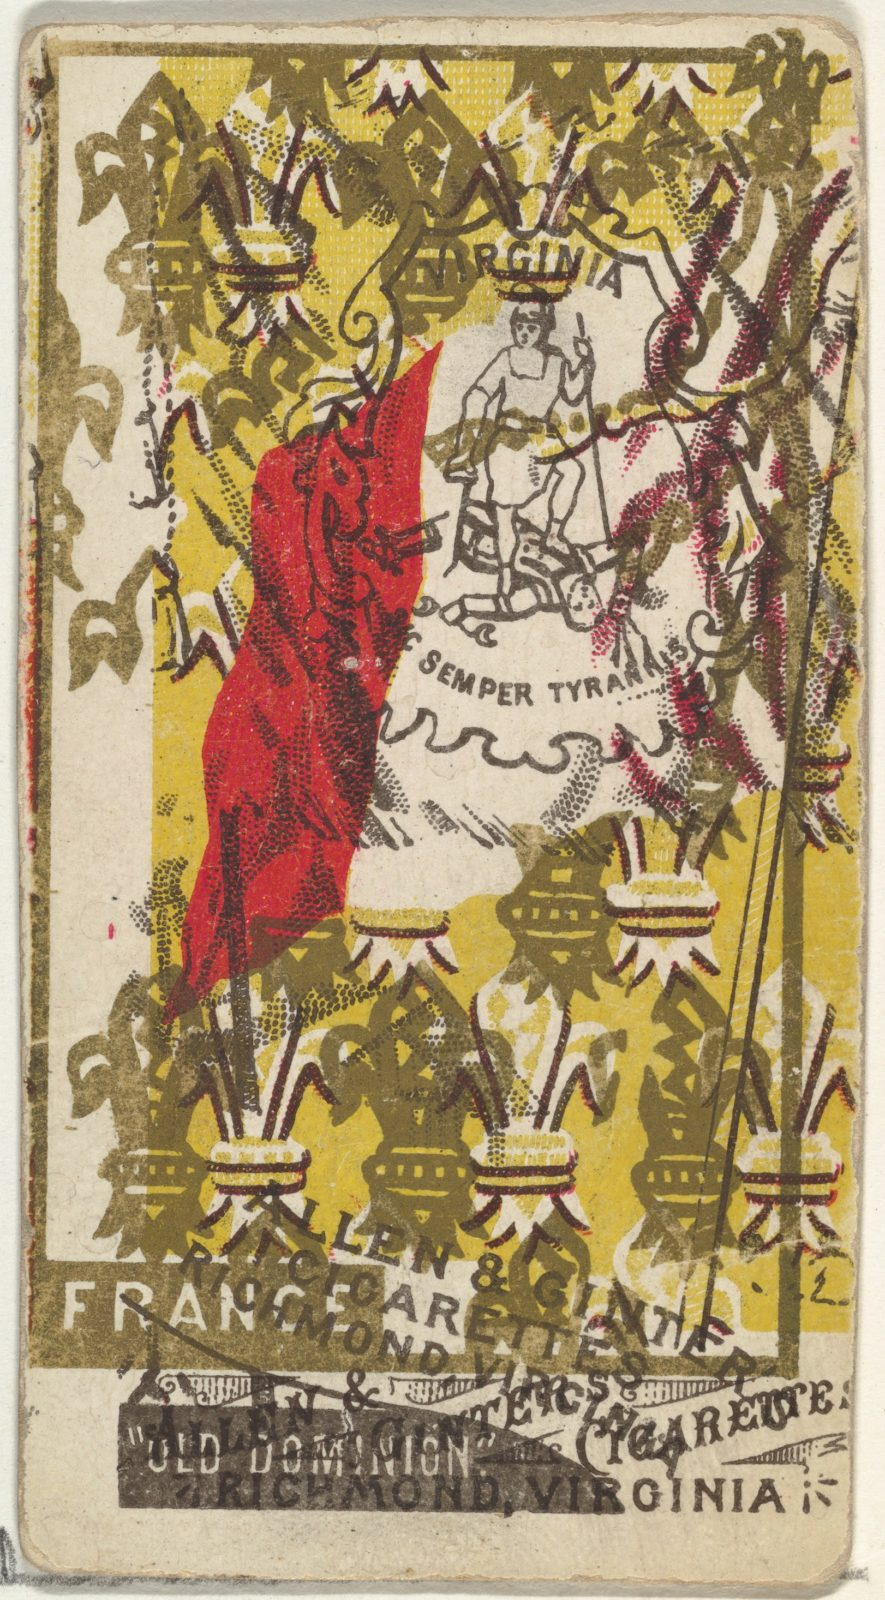 Virginia and France (double-printed card), from Flags of All Nations, Series 1 (N9) for Allen & Ginter Cigarettes Brands